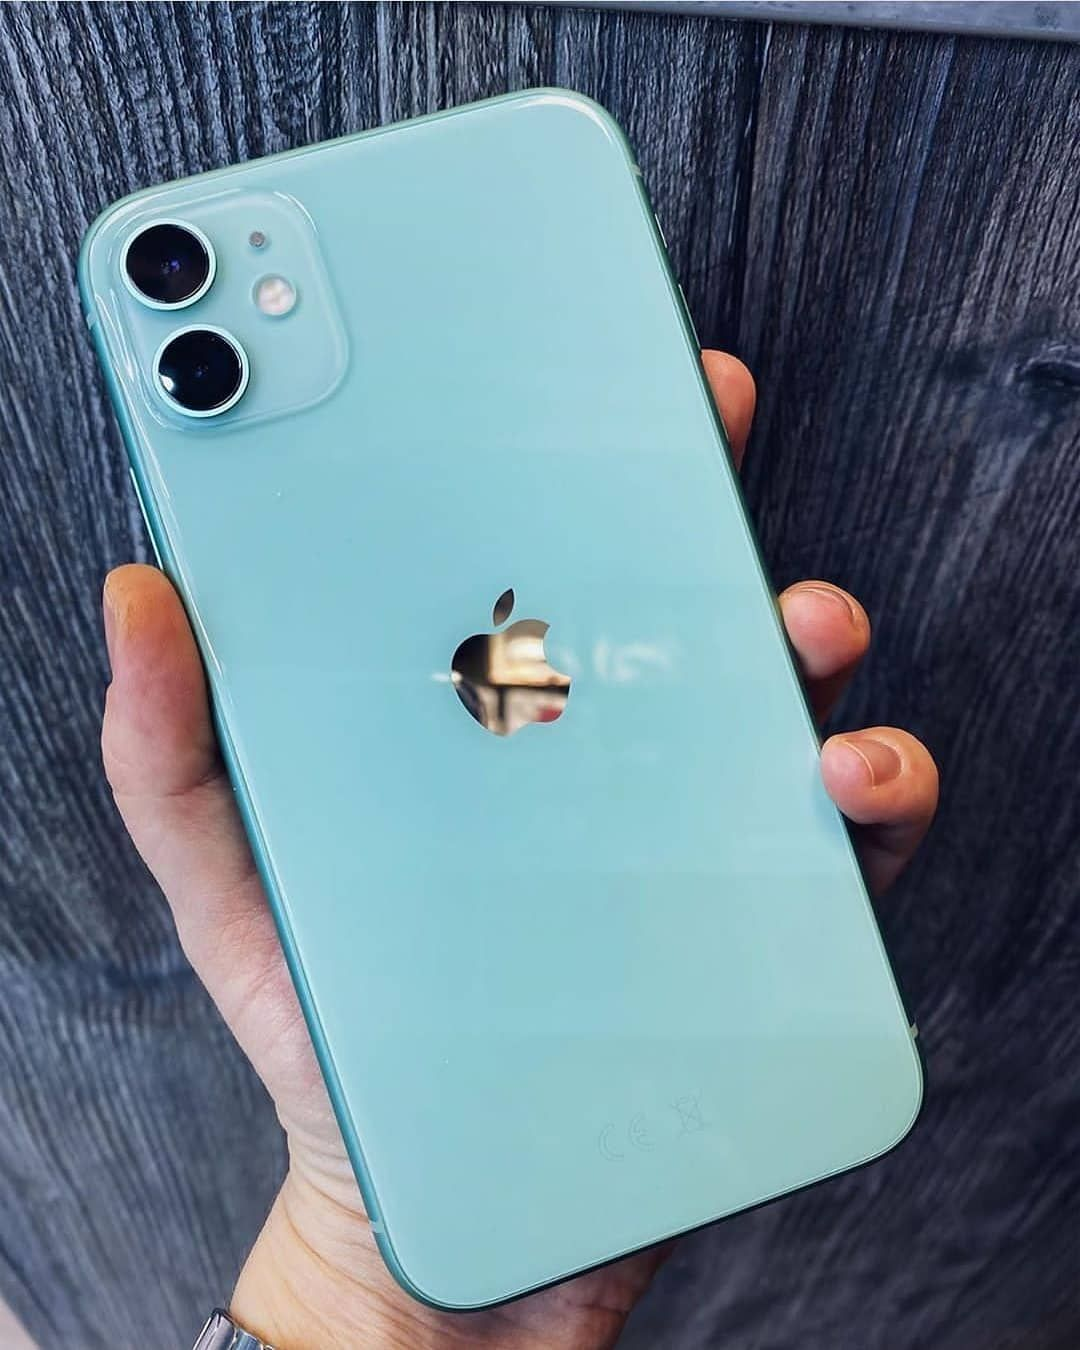 Apple Tech Ig On Instagram Iphone Xl Blue Which Is Your Favourite Iphone Colour What Are Your Thought S On This Iphone Iphone Colors New Iphone